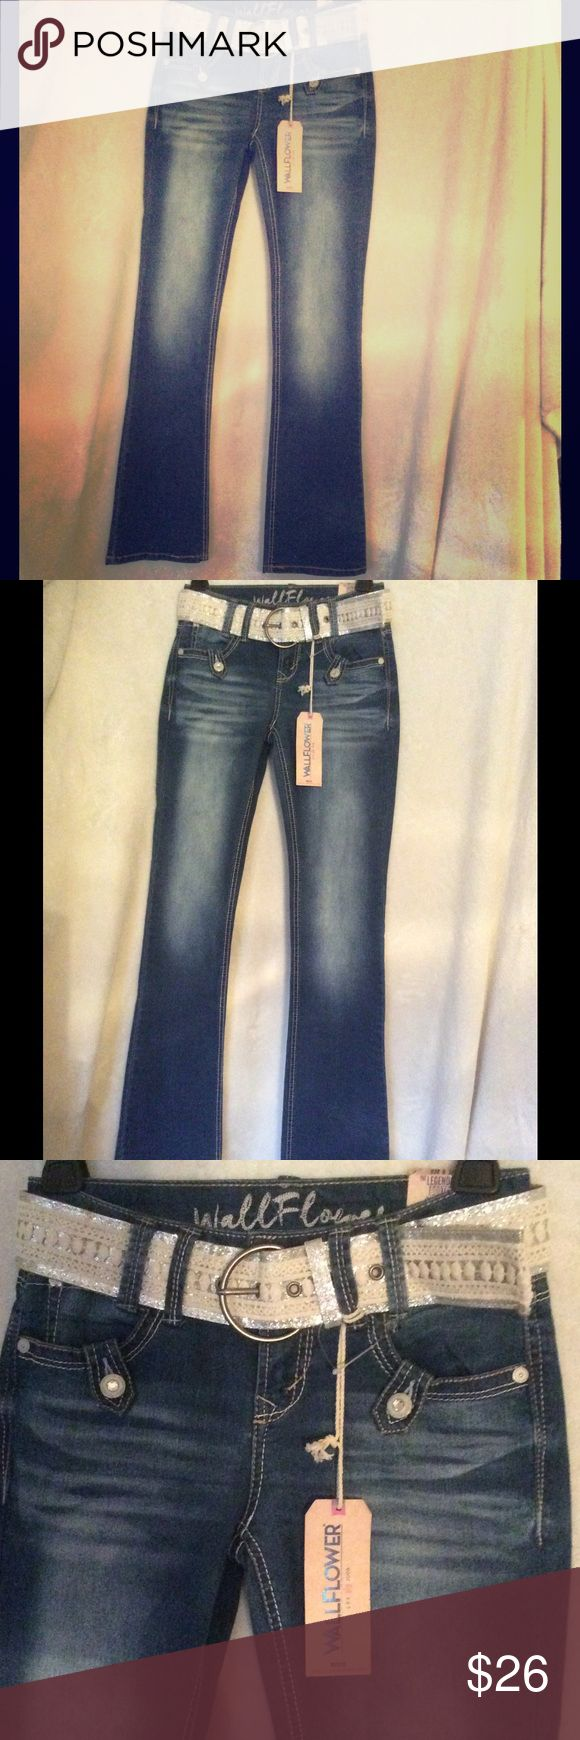 NEW WallFlower Rhinestone Jeans Belt CUTE Size 0 NEW WallFlower The Legendary Fit Rhinestone Bootcut Jeans Size 0 The Classic Heritage Fit sits low on the waist, Includes glittery belt!!   Wallflower Jeans Boot Cut